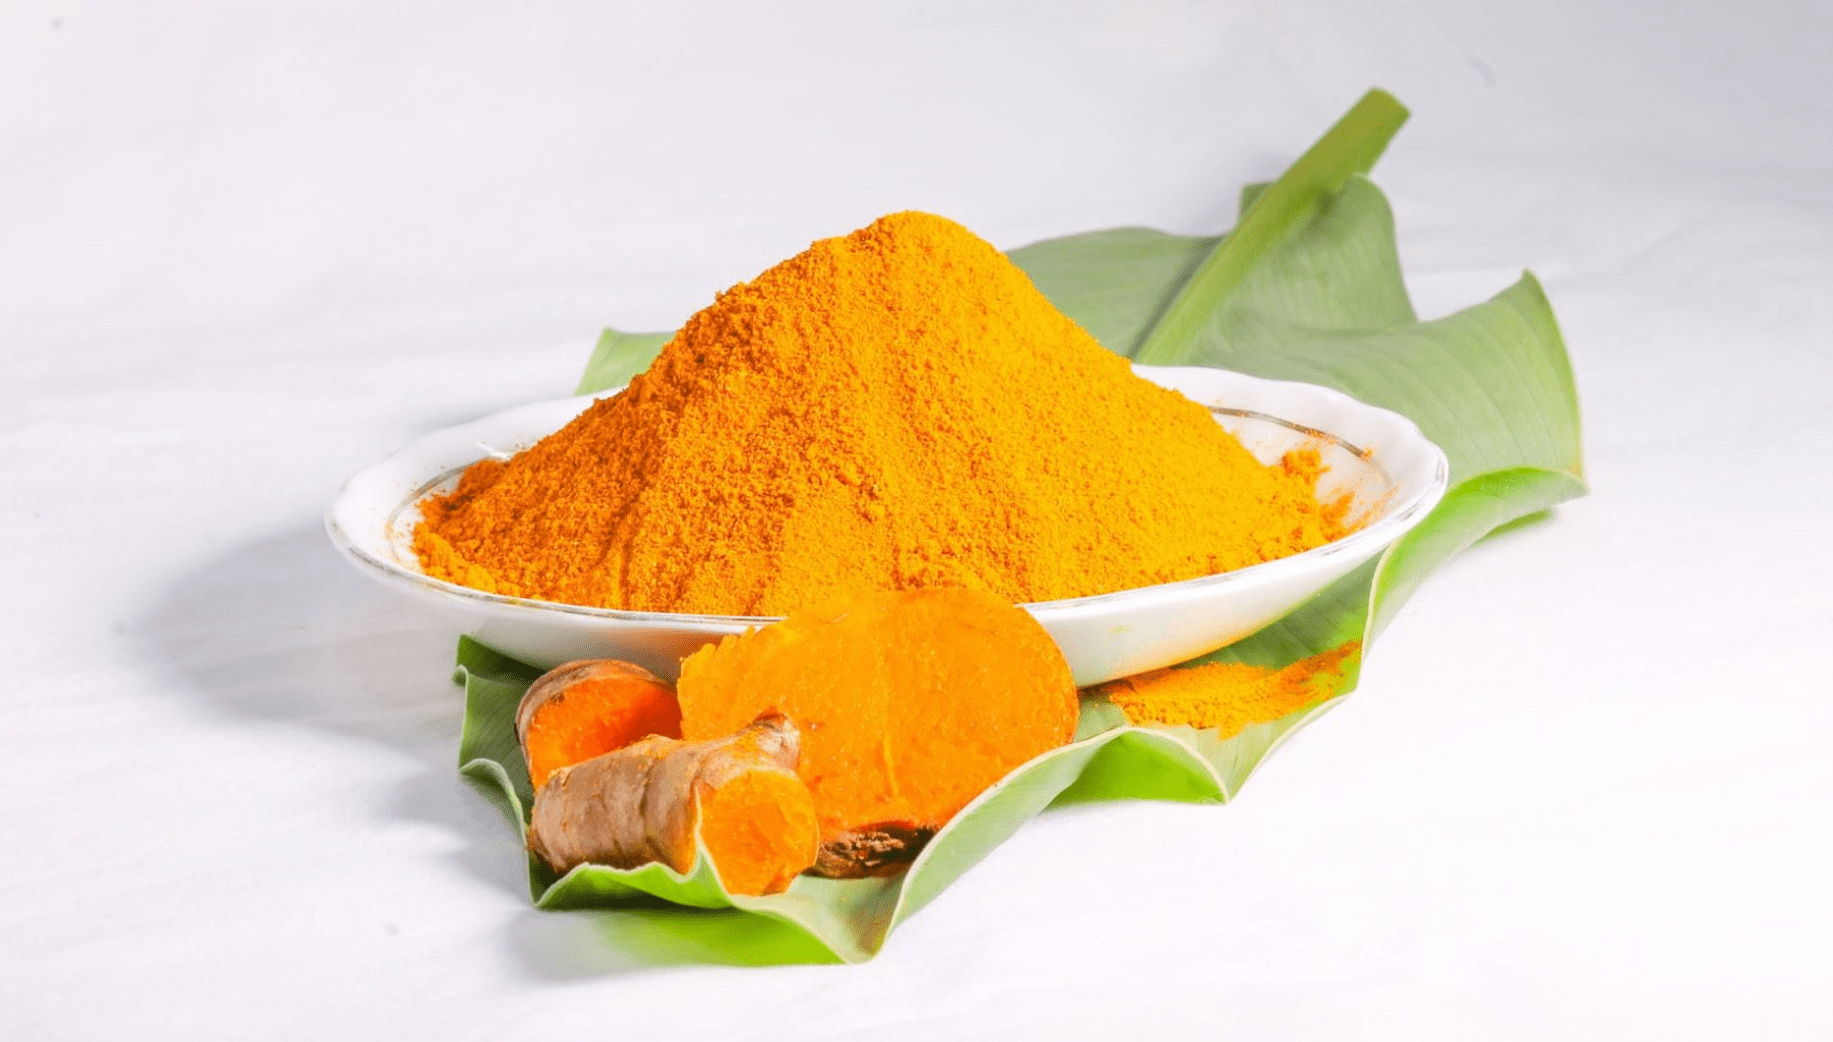 Lakadong turmeric powder from Meghalaya